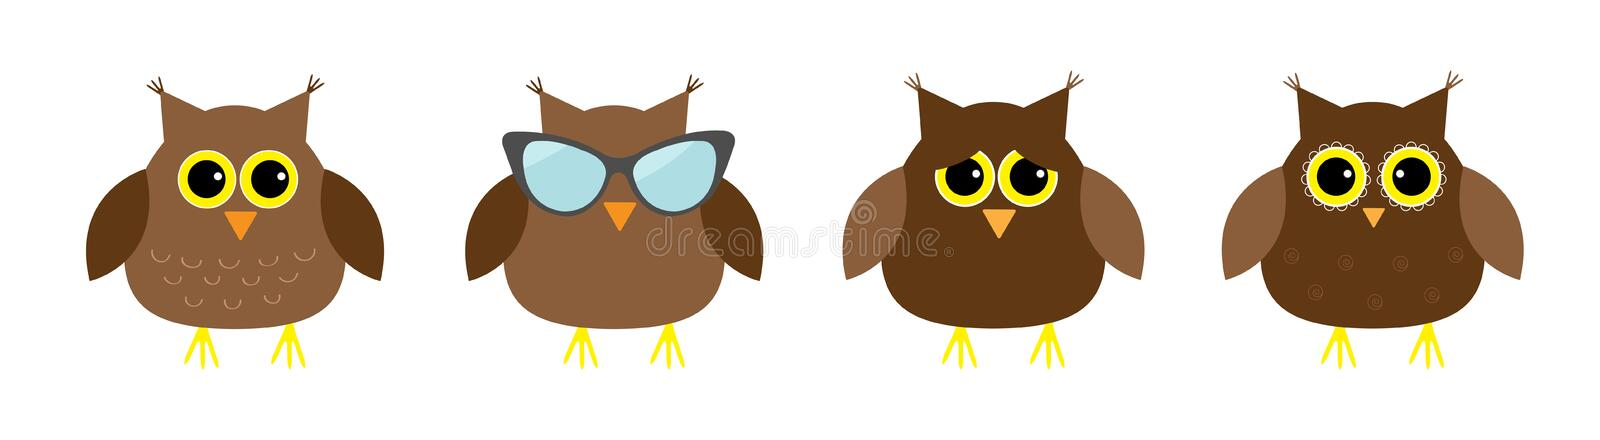 Cute owl set line. Big eyes, sunglasses. Cute cartoon kawaii funny character. Icons on white baby background. Isolated. Flat. Design. Vector illustration royalty free illustration